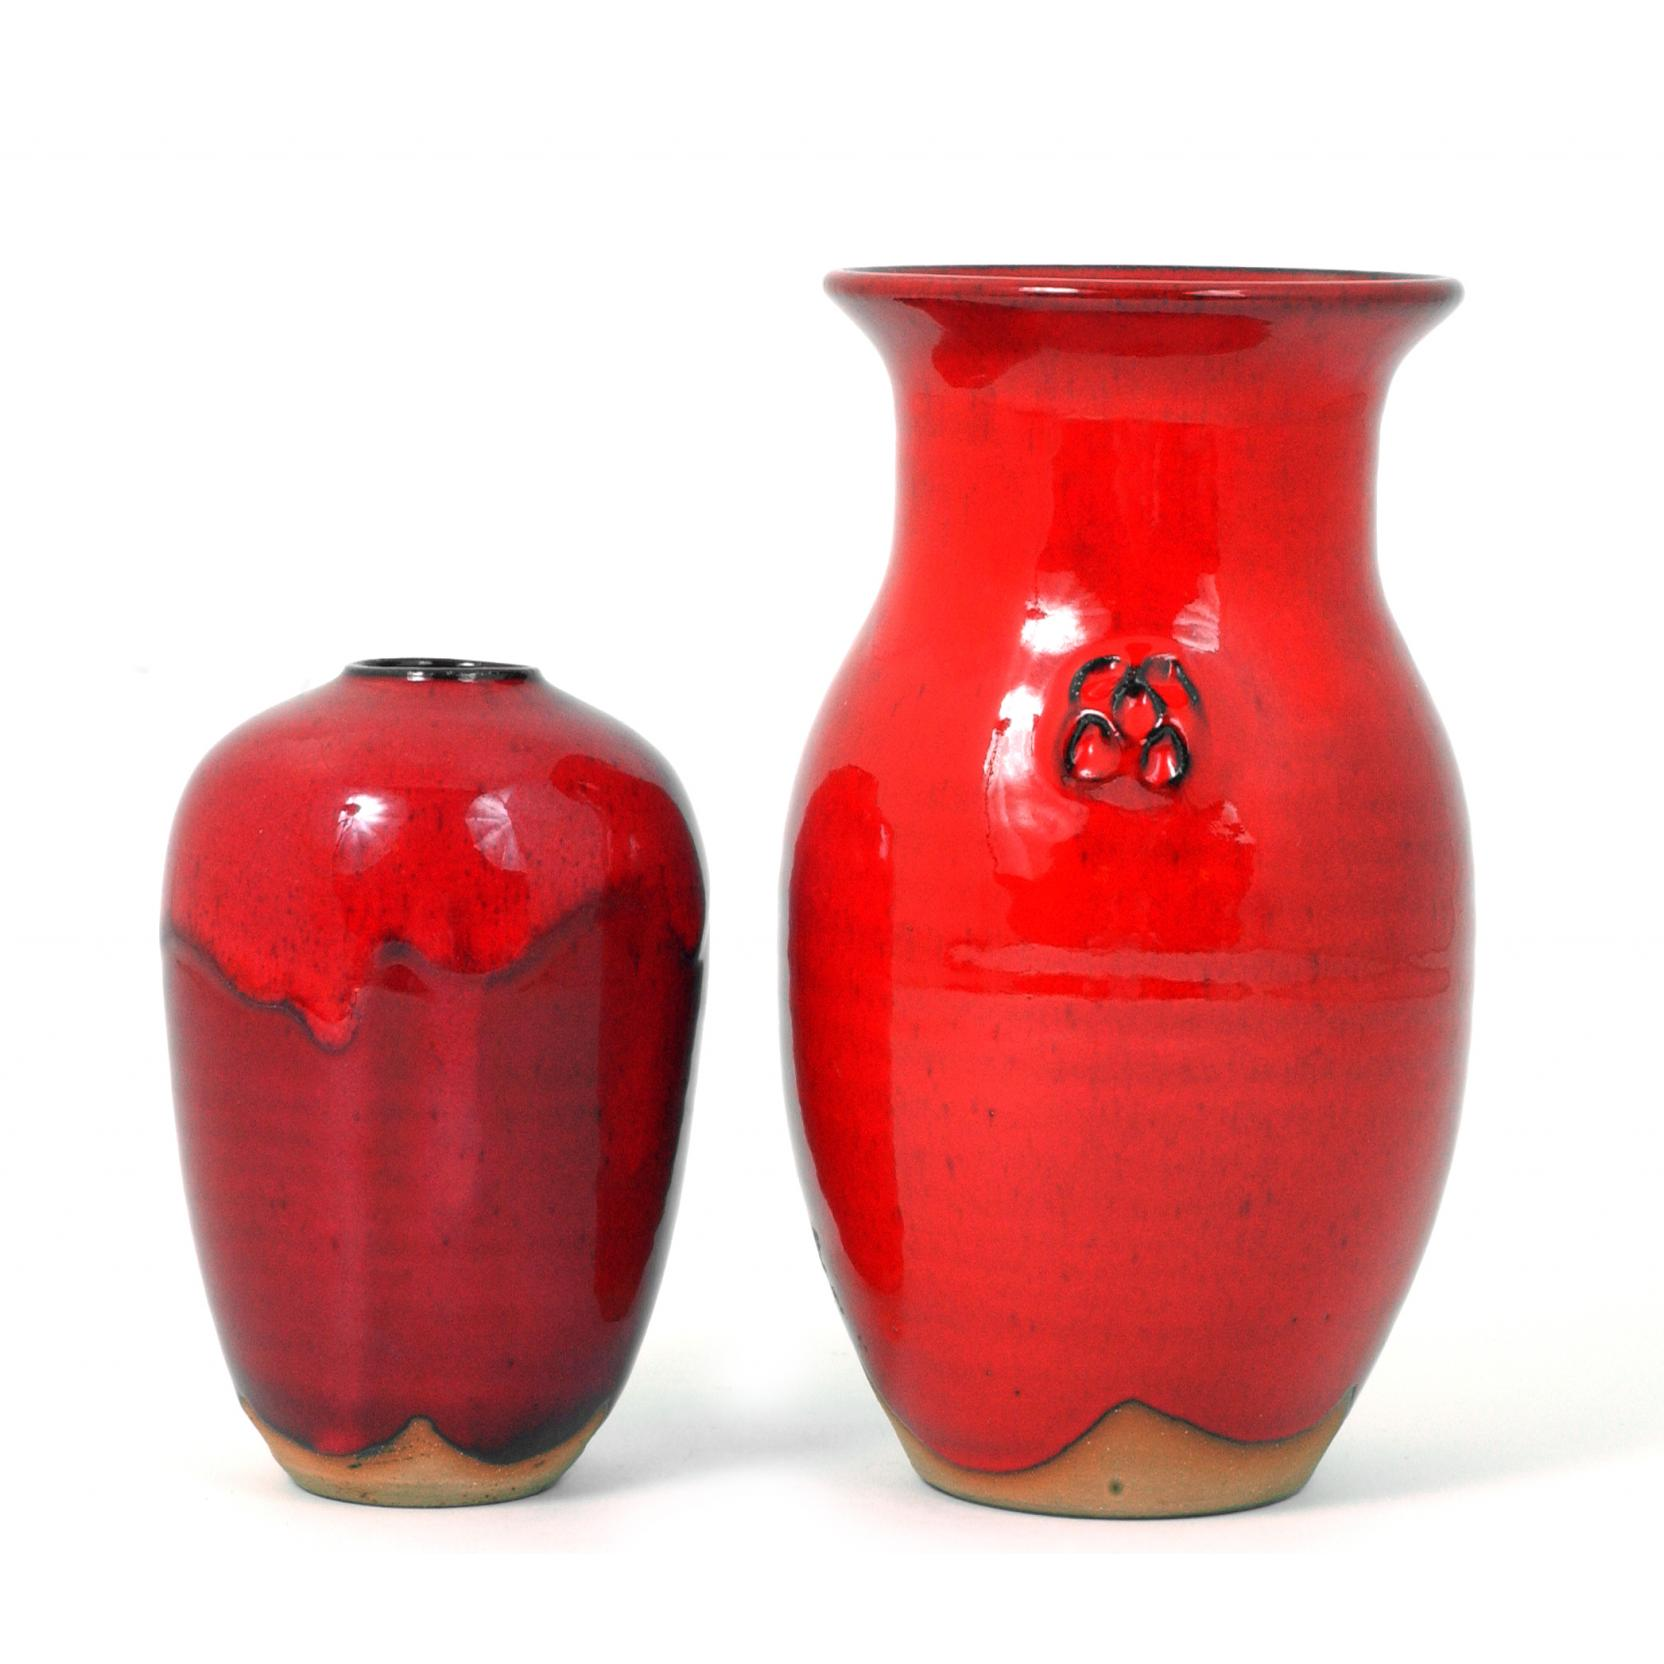 two-chinese-red-vases-ben-owen-iii